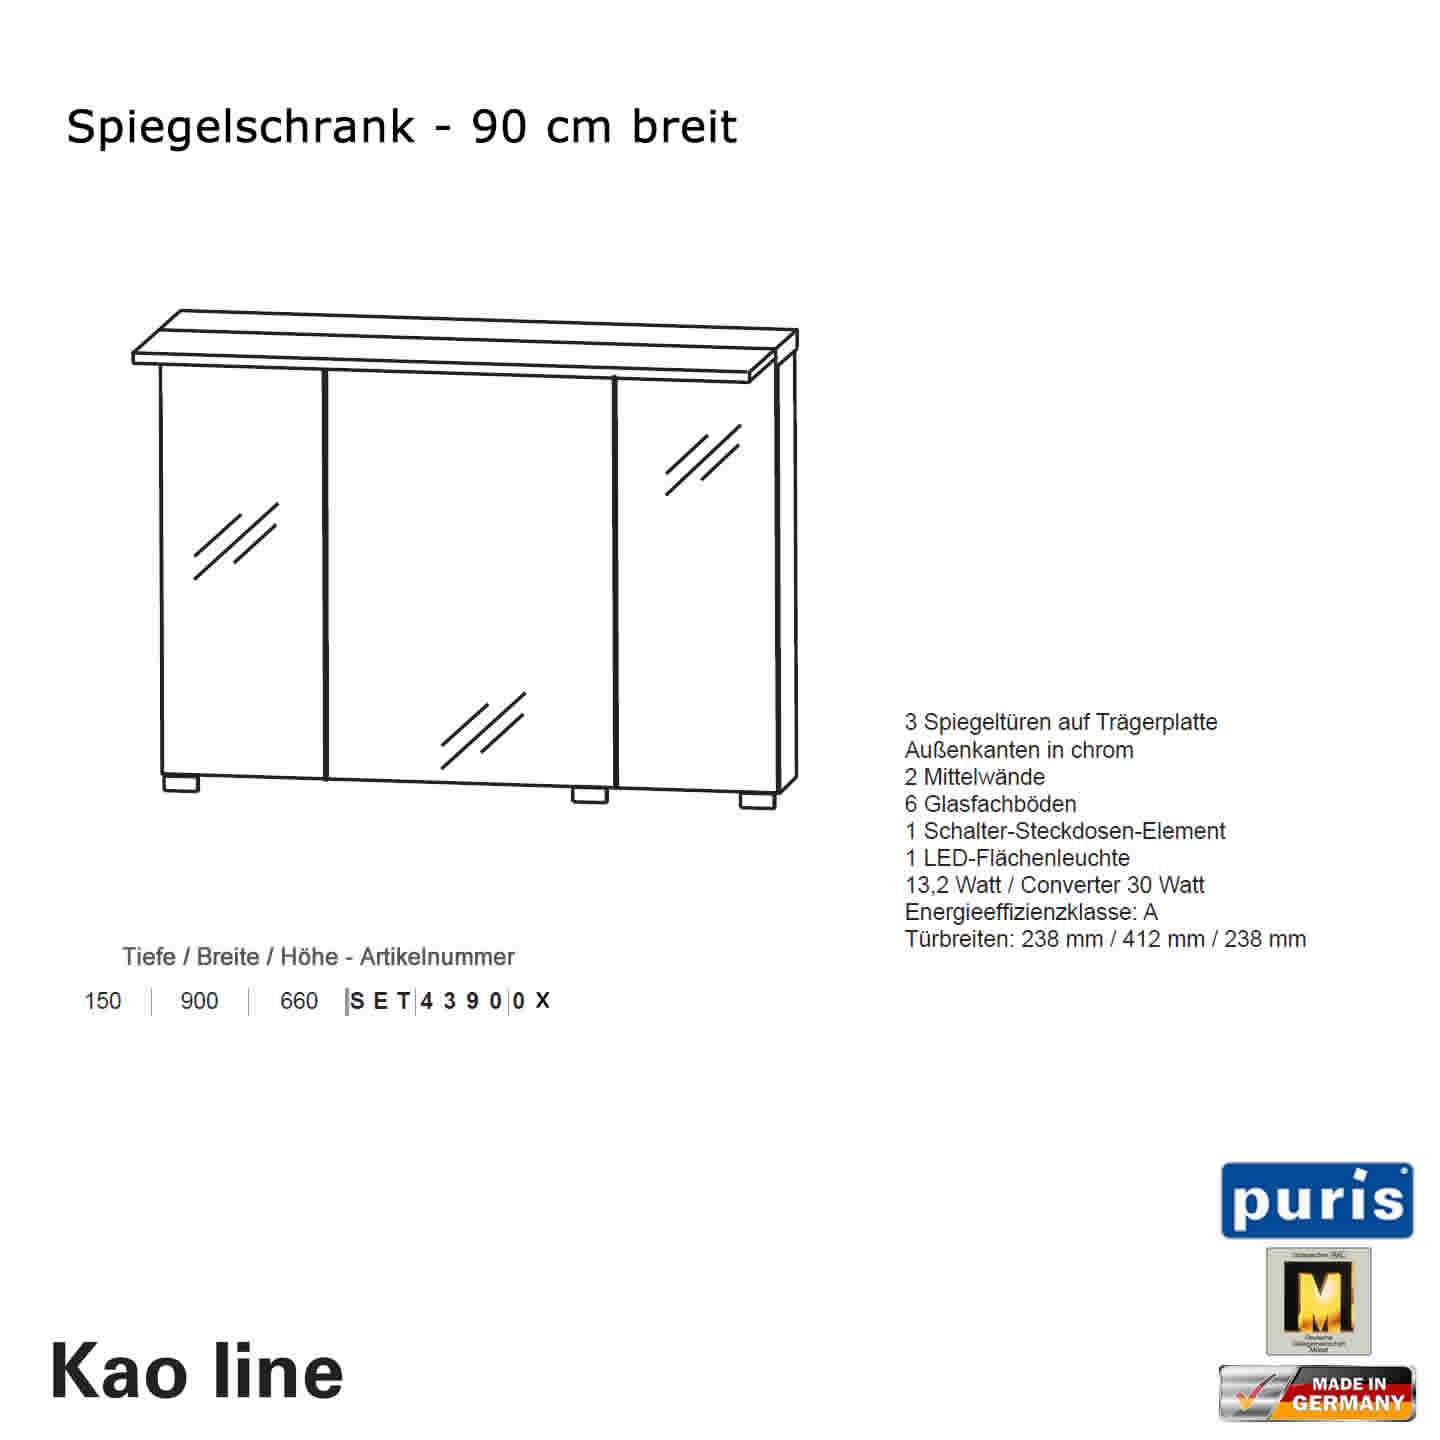 puris kao line spiegelschrank 90 cm impulsbad. Black Bedroom Furniture Sets. Home Design Ideas